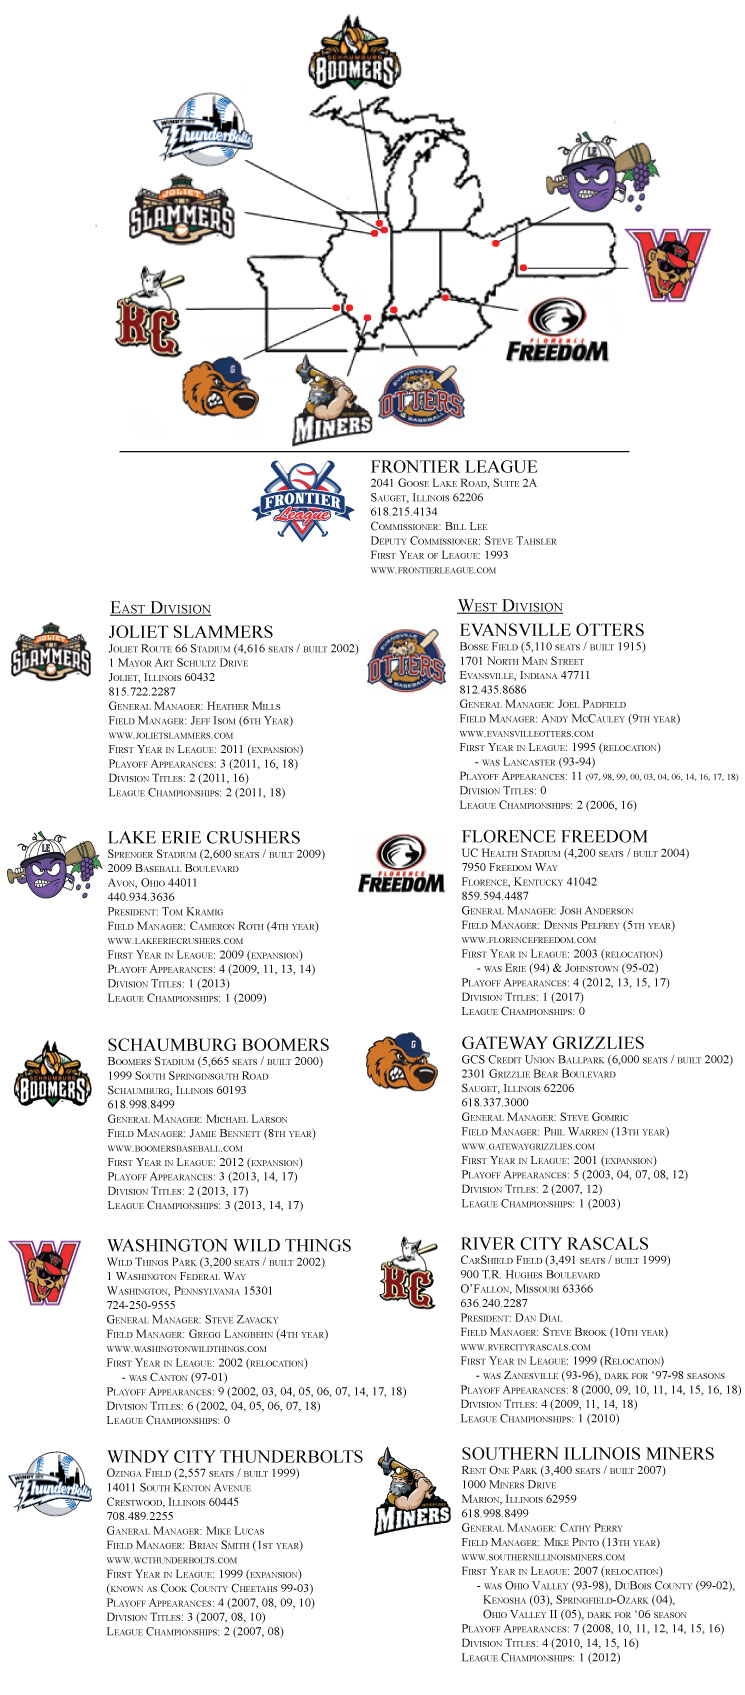 Windy City Thunderbolts: Frontier League